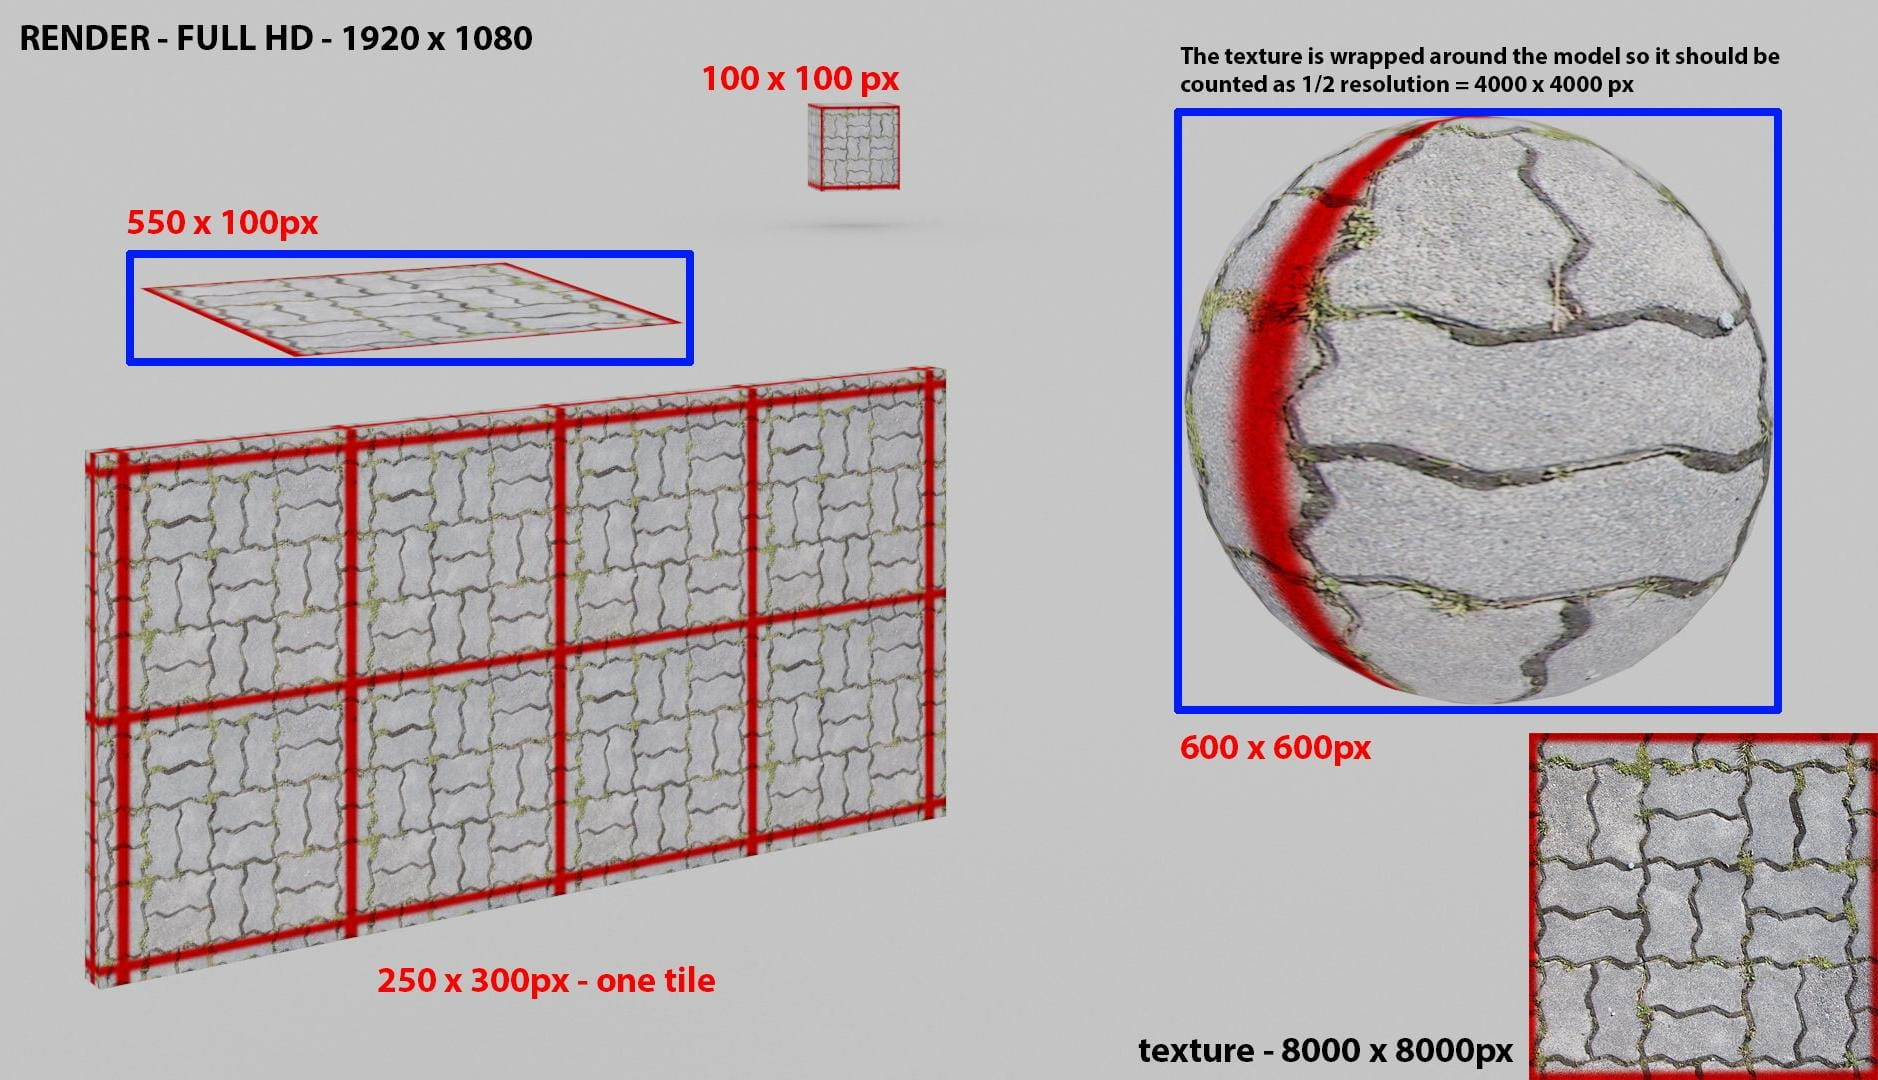 Optimize your textures for faster rendering - Evermotion